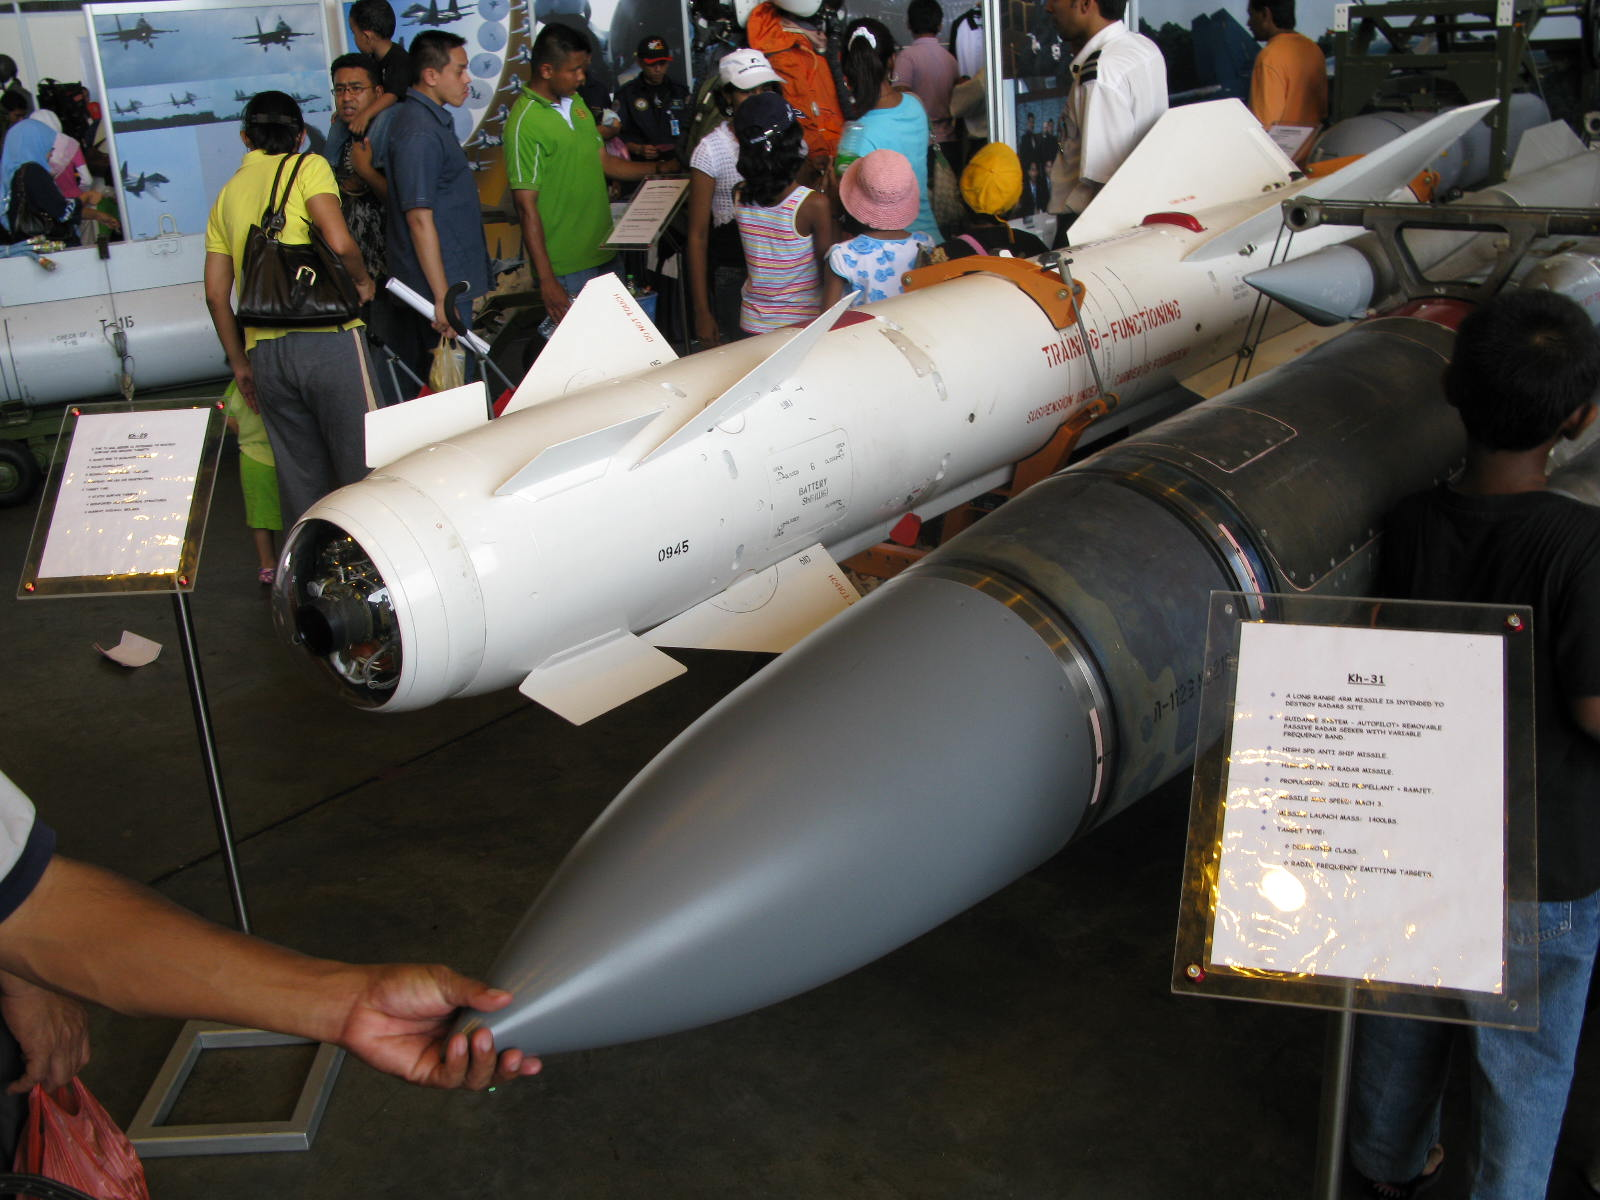 The KH-31A missile shown during RMAF Open Day back in 2008. The other missile is the KH-29